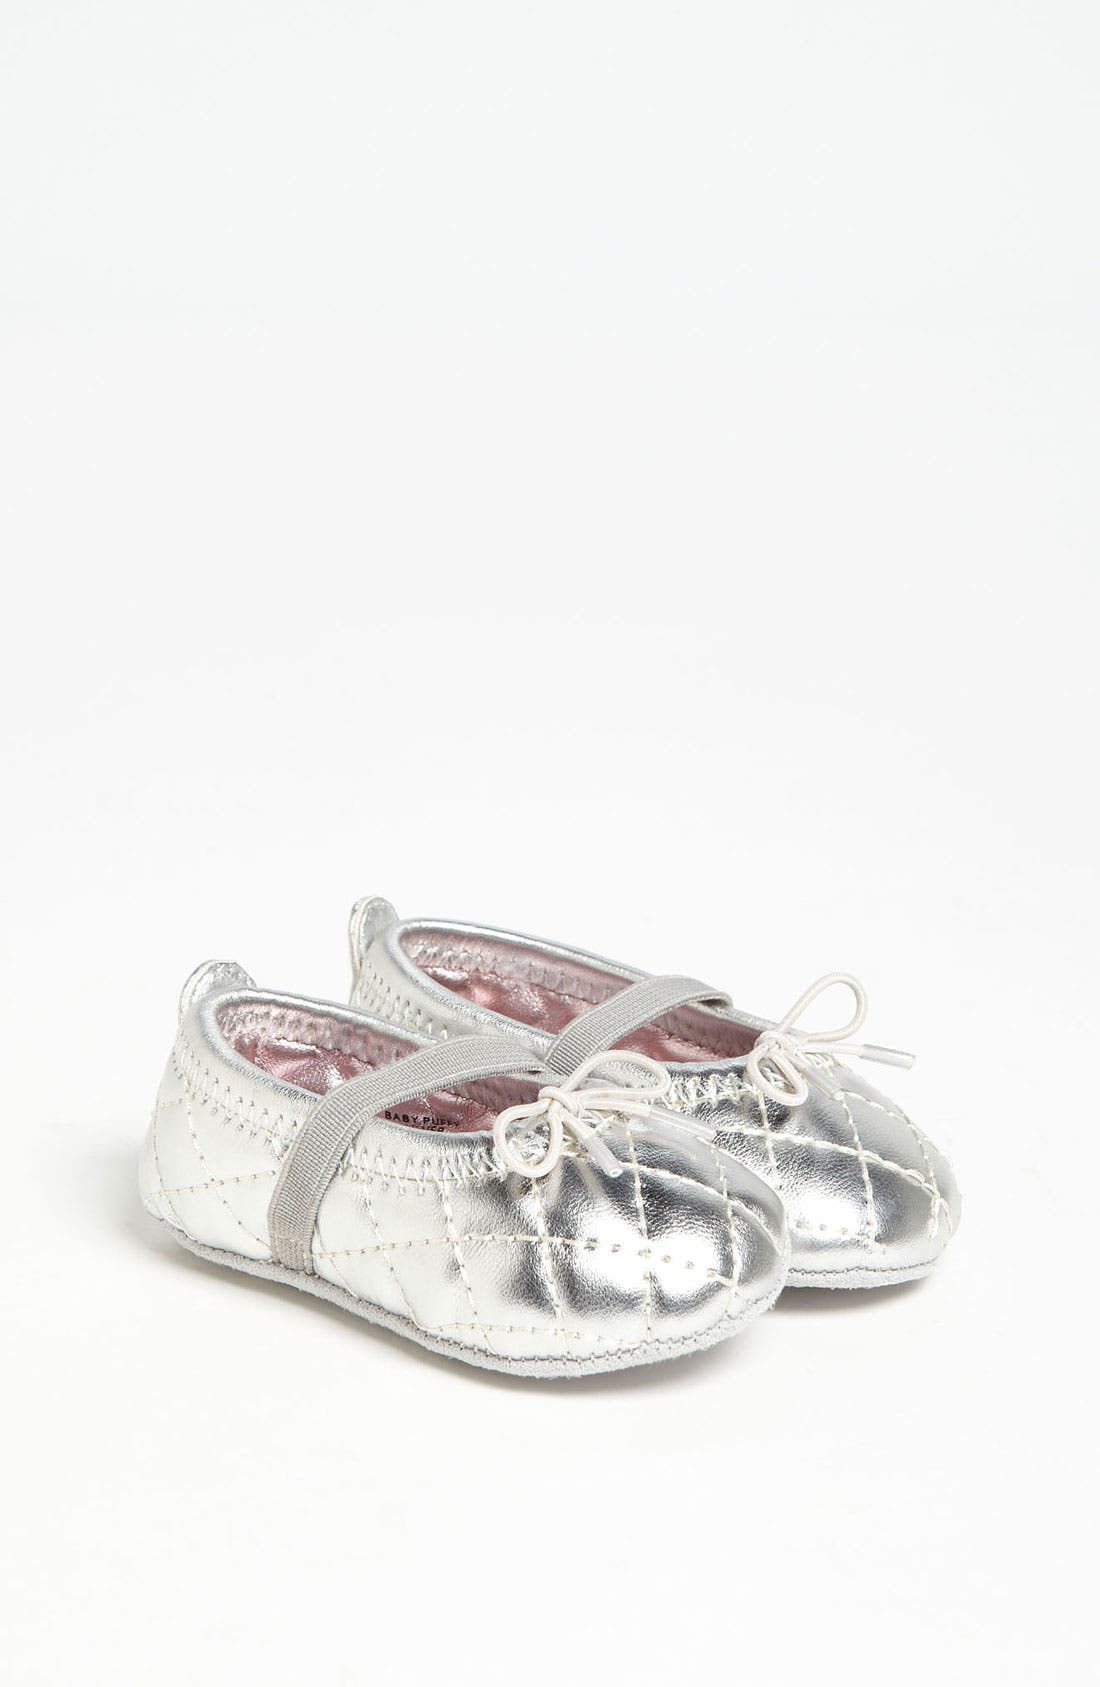 Alternate Image 1 Selected - Stuart Weitzman 'Baby Puffy' Crib Shoe (Baby)